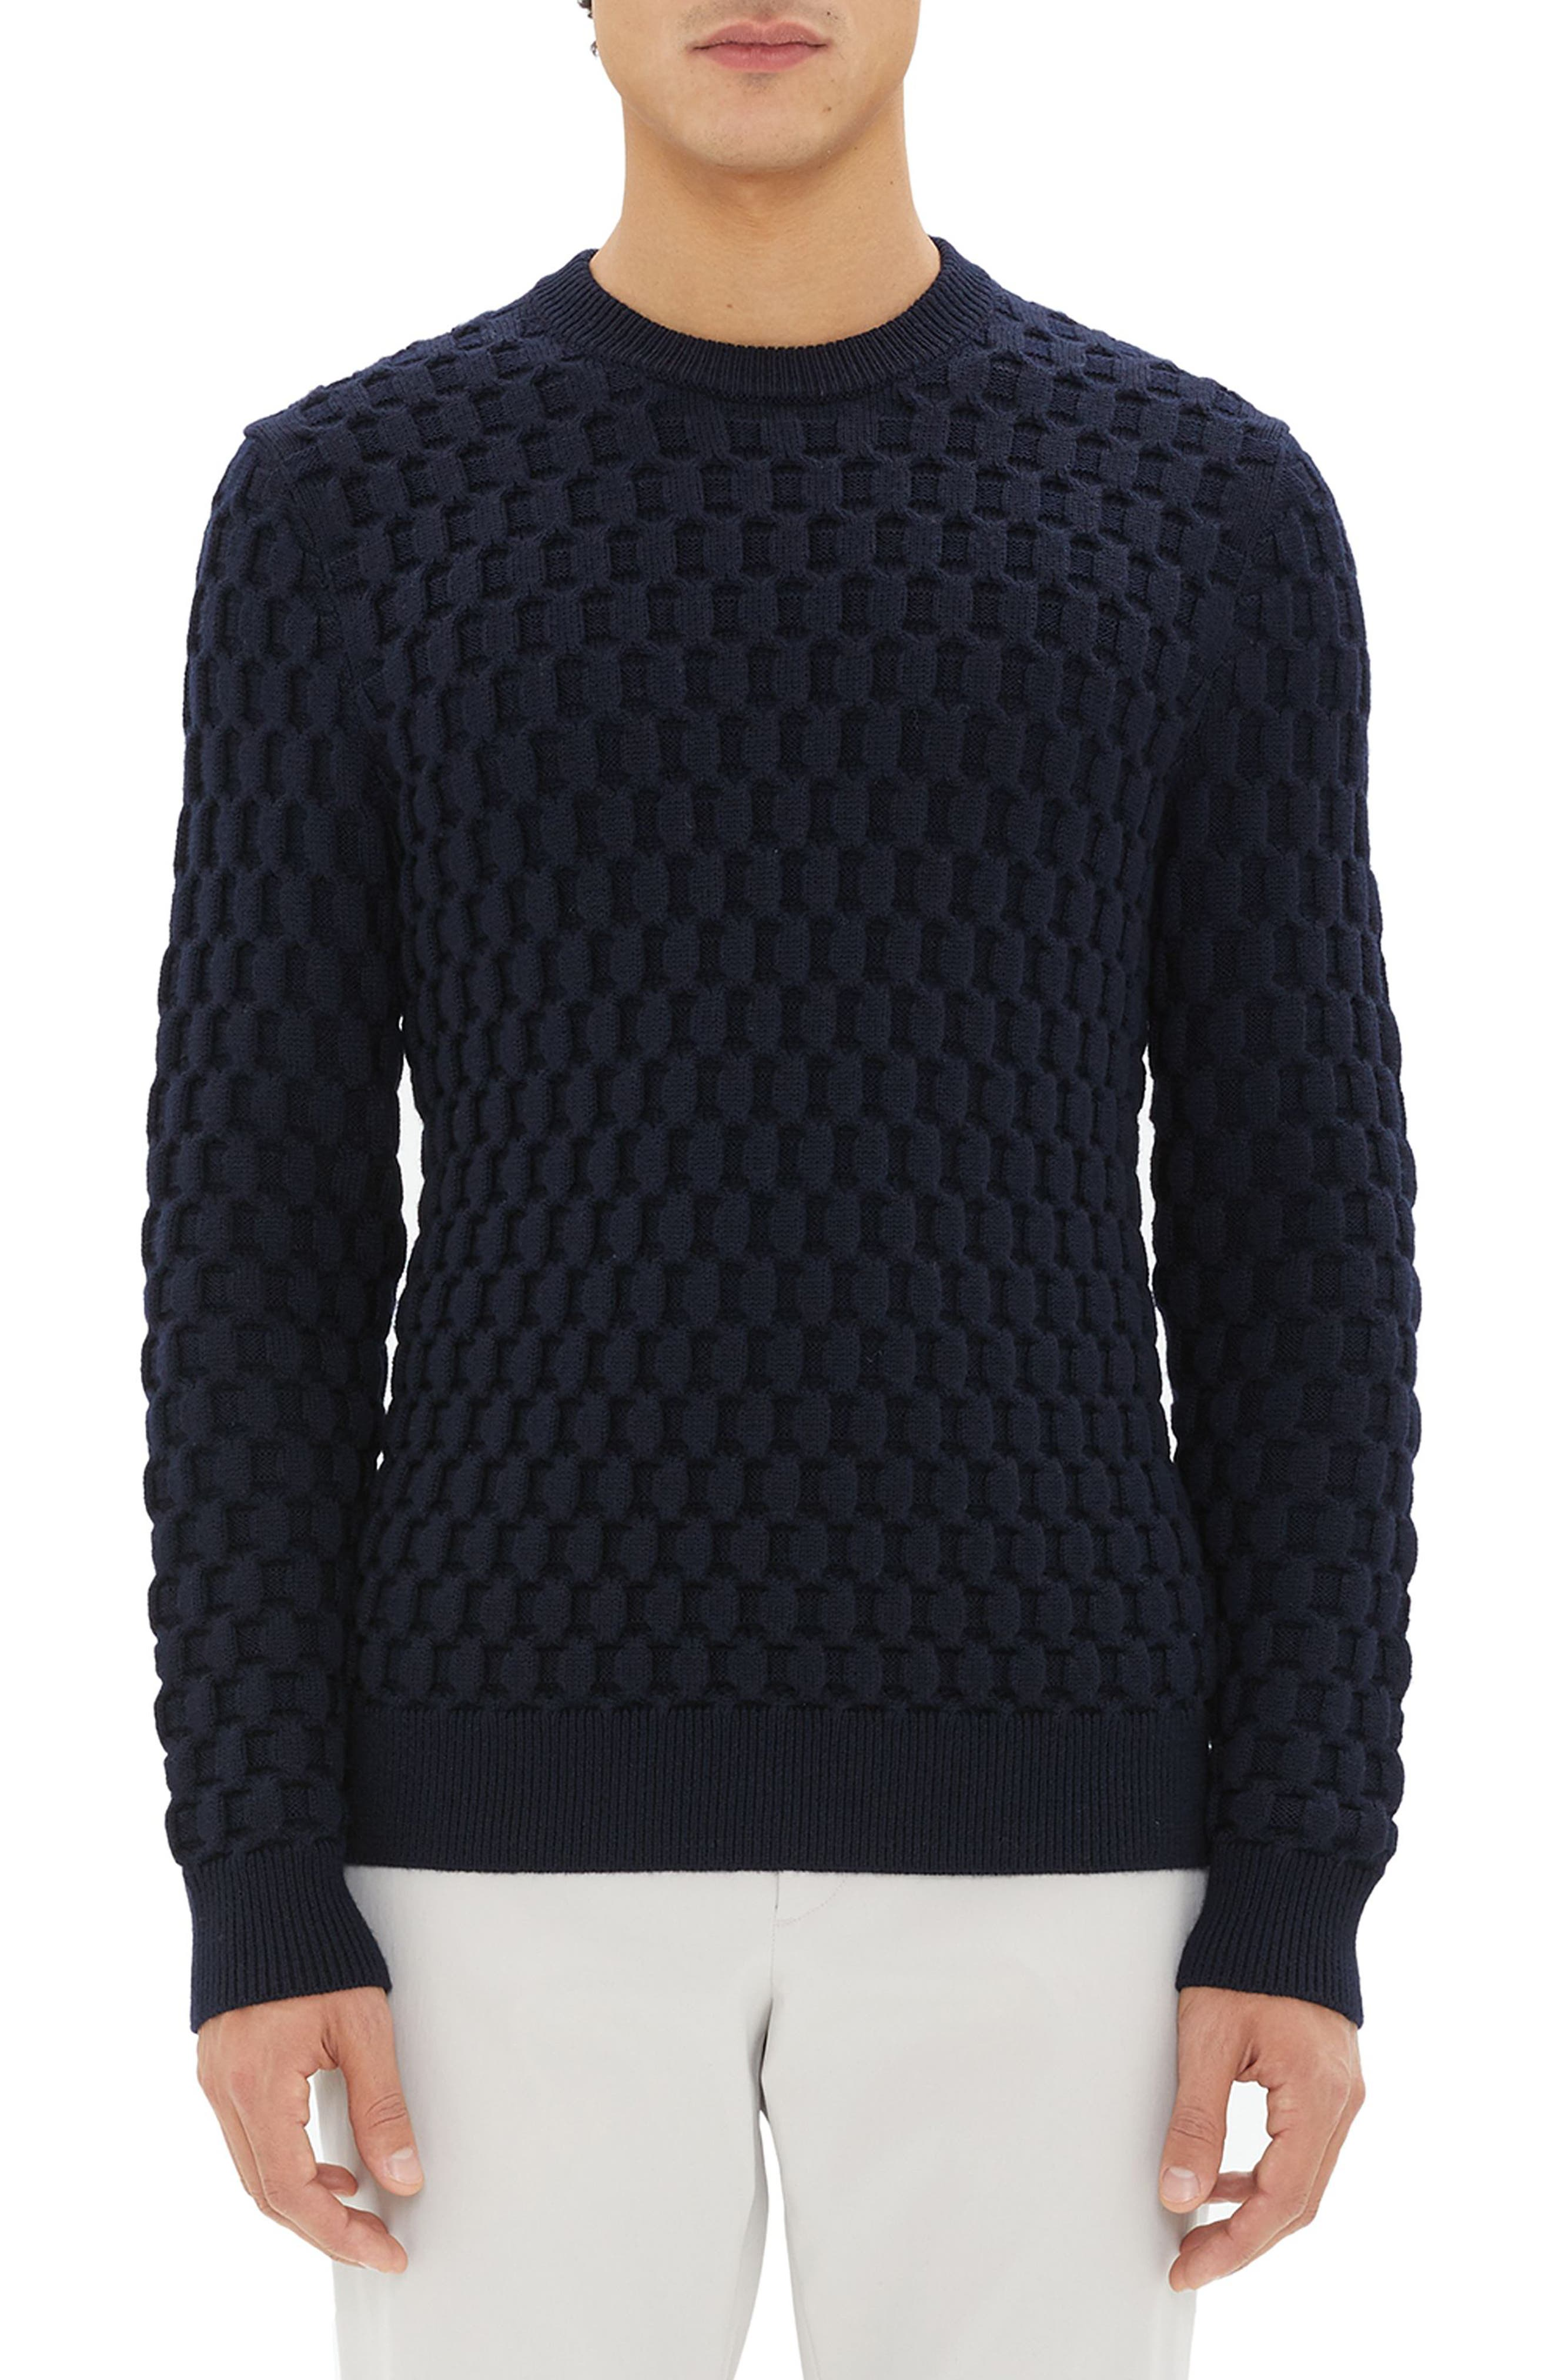 Marcos Honeycomb Merino Wool Sweater,                         Main,                         color, ECLIPSE